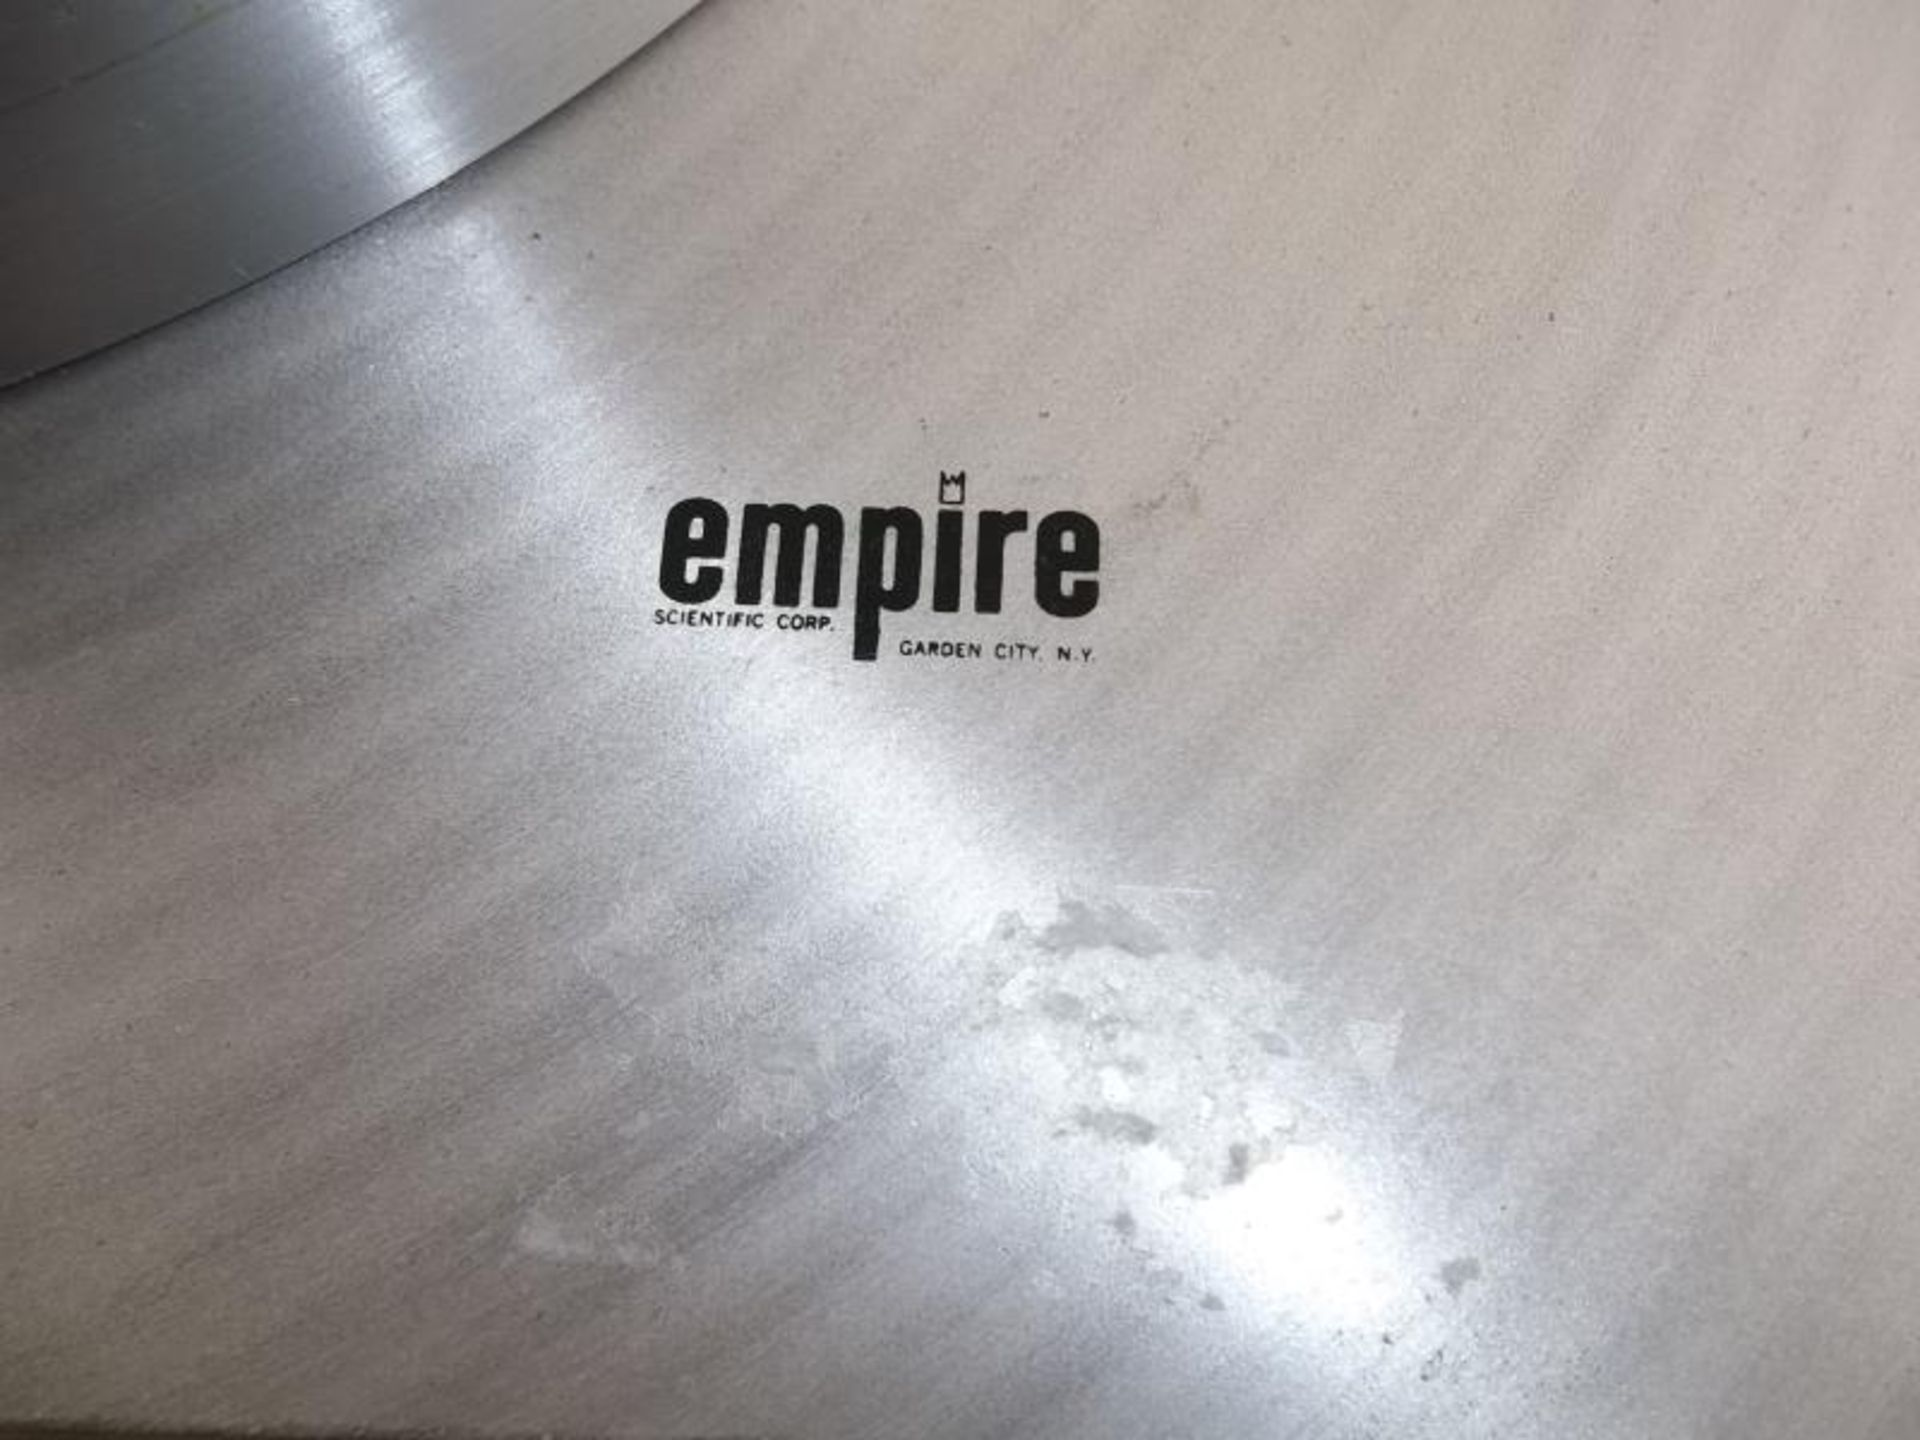 Lot 560 - Empire turntable, no arm, brushed silver finish (pitted)